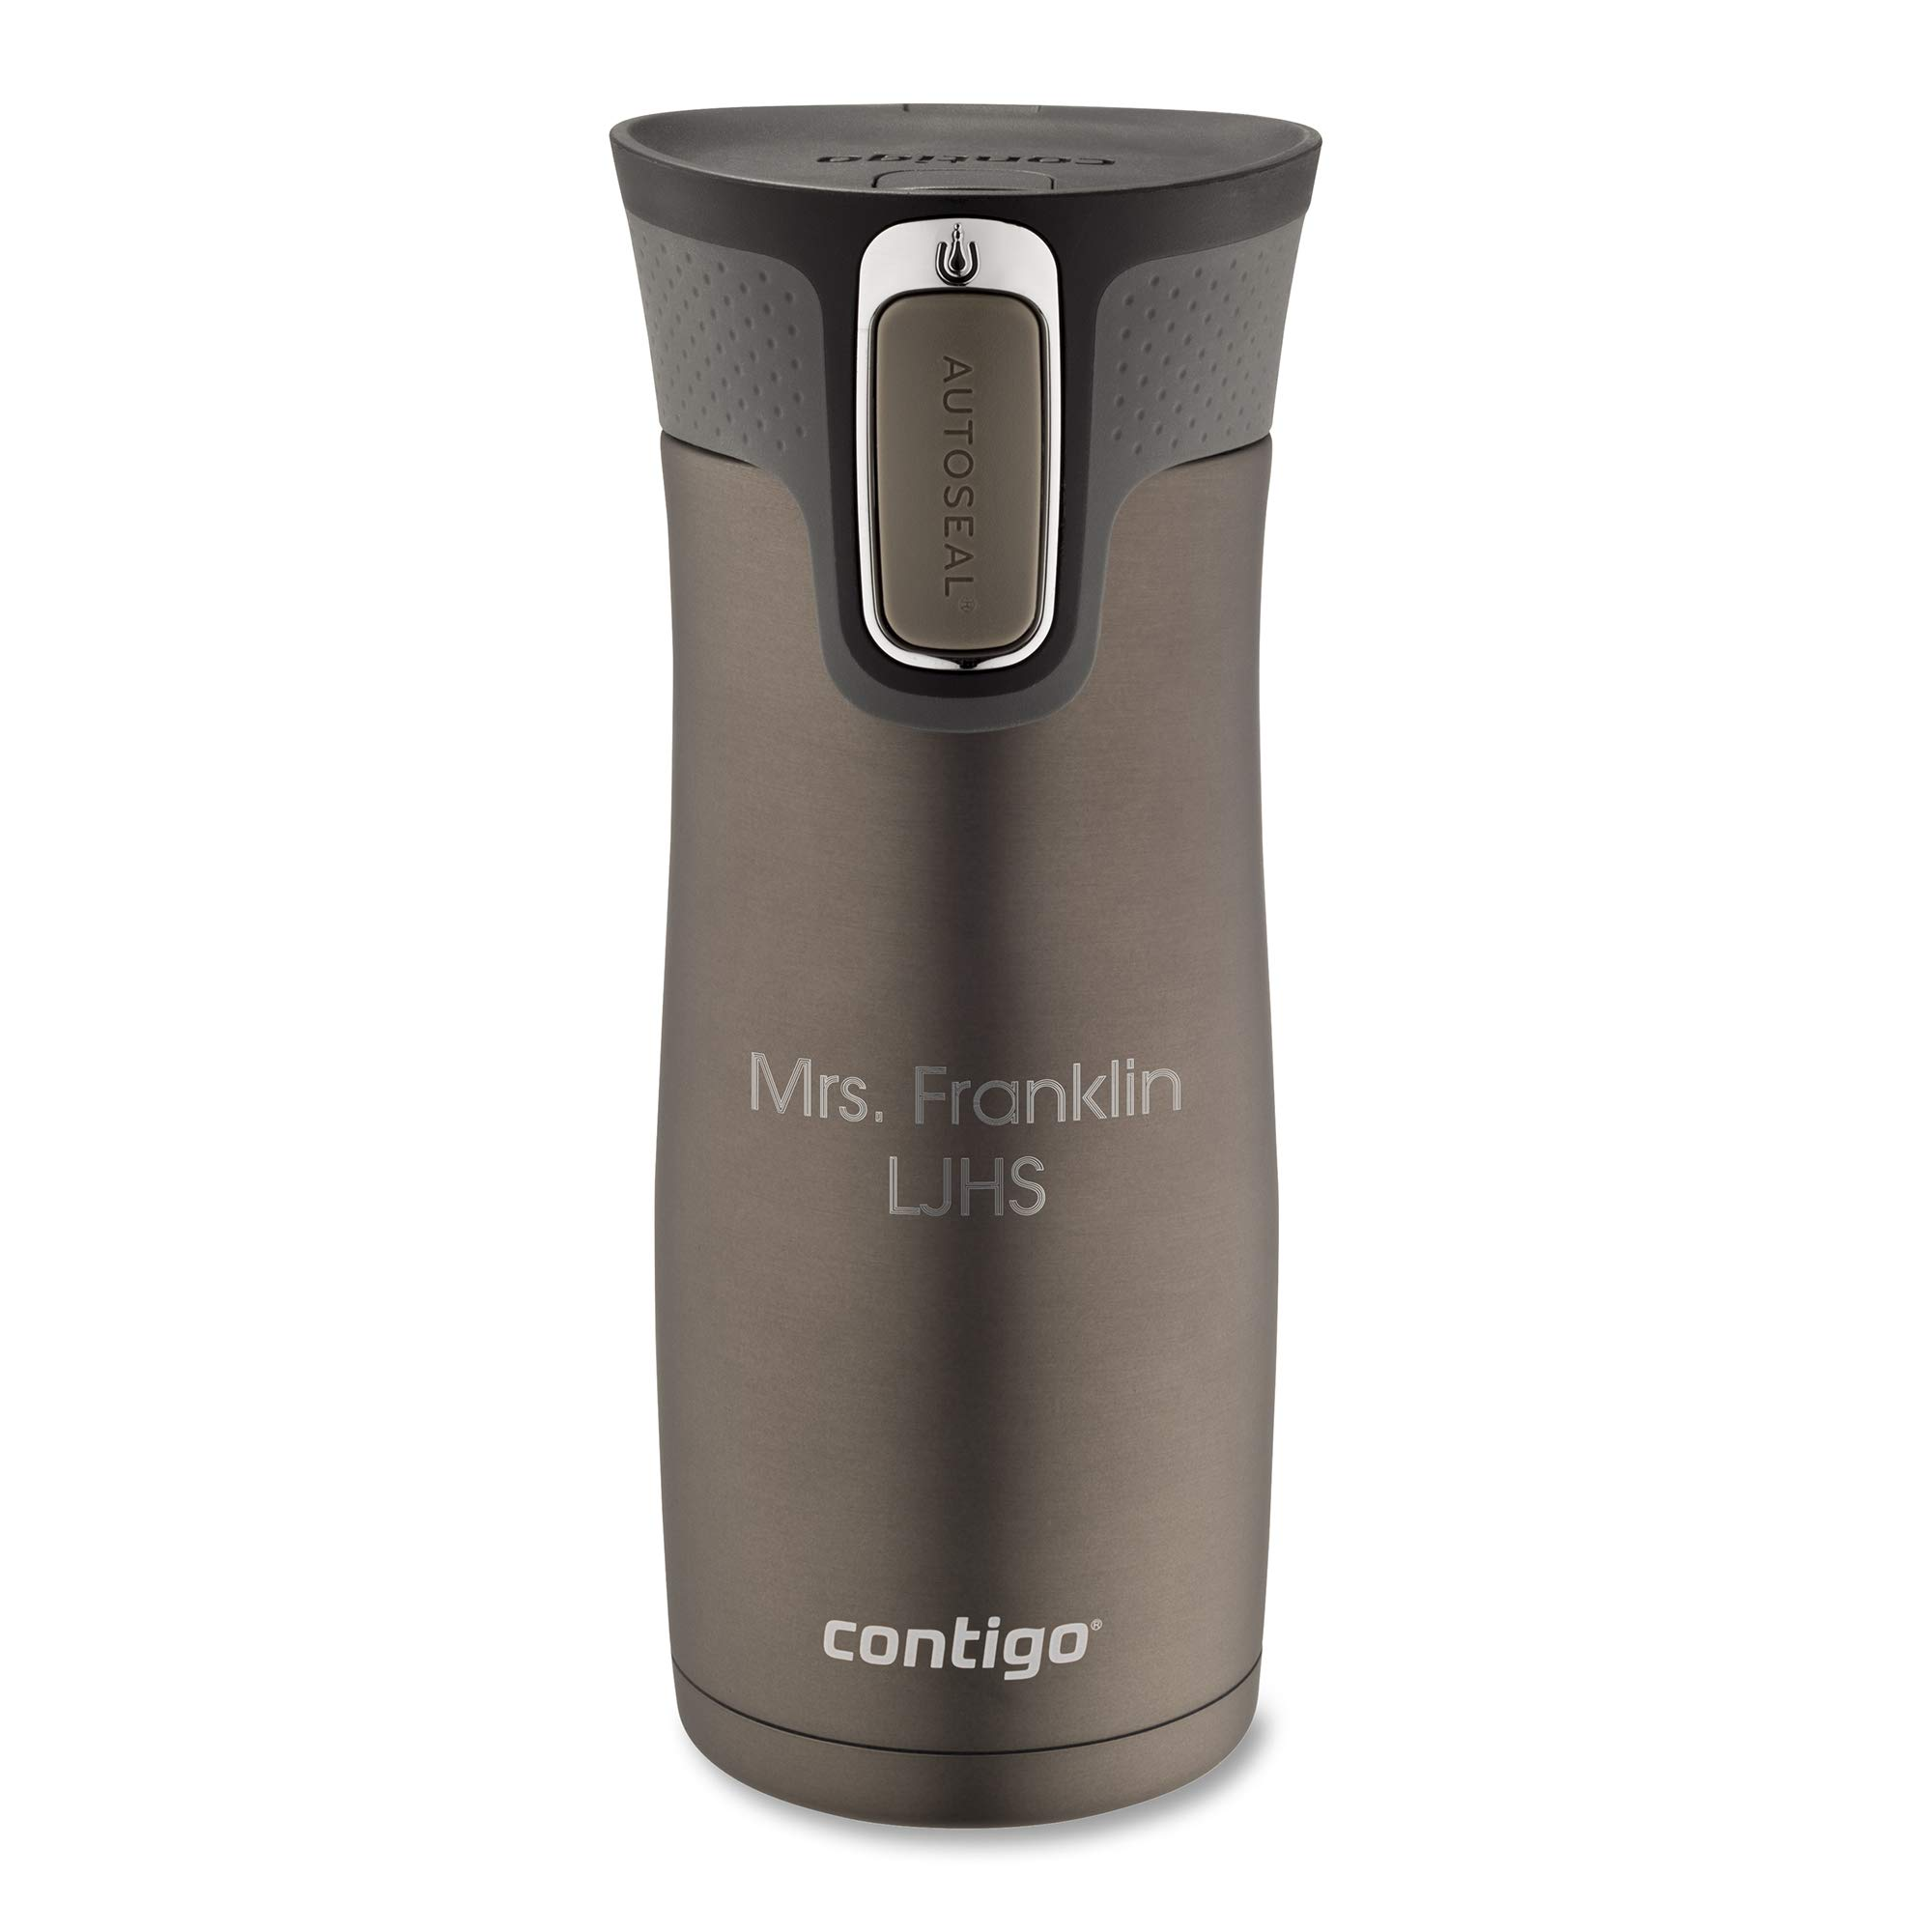 Personalized Contigo Latte West Loop Autoseal 16 Oz Stainless Steel Travel Mug, Mug with Engraving Included